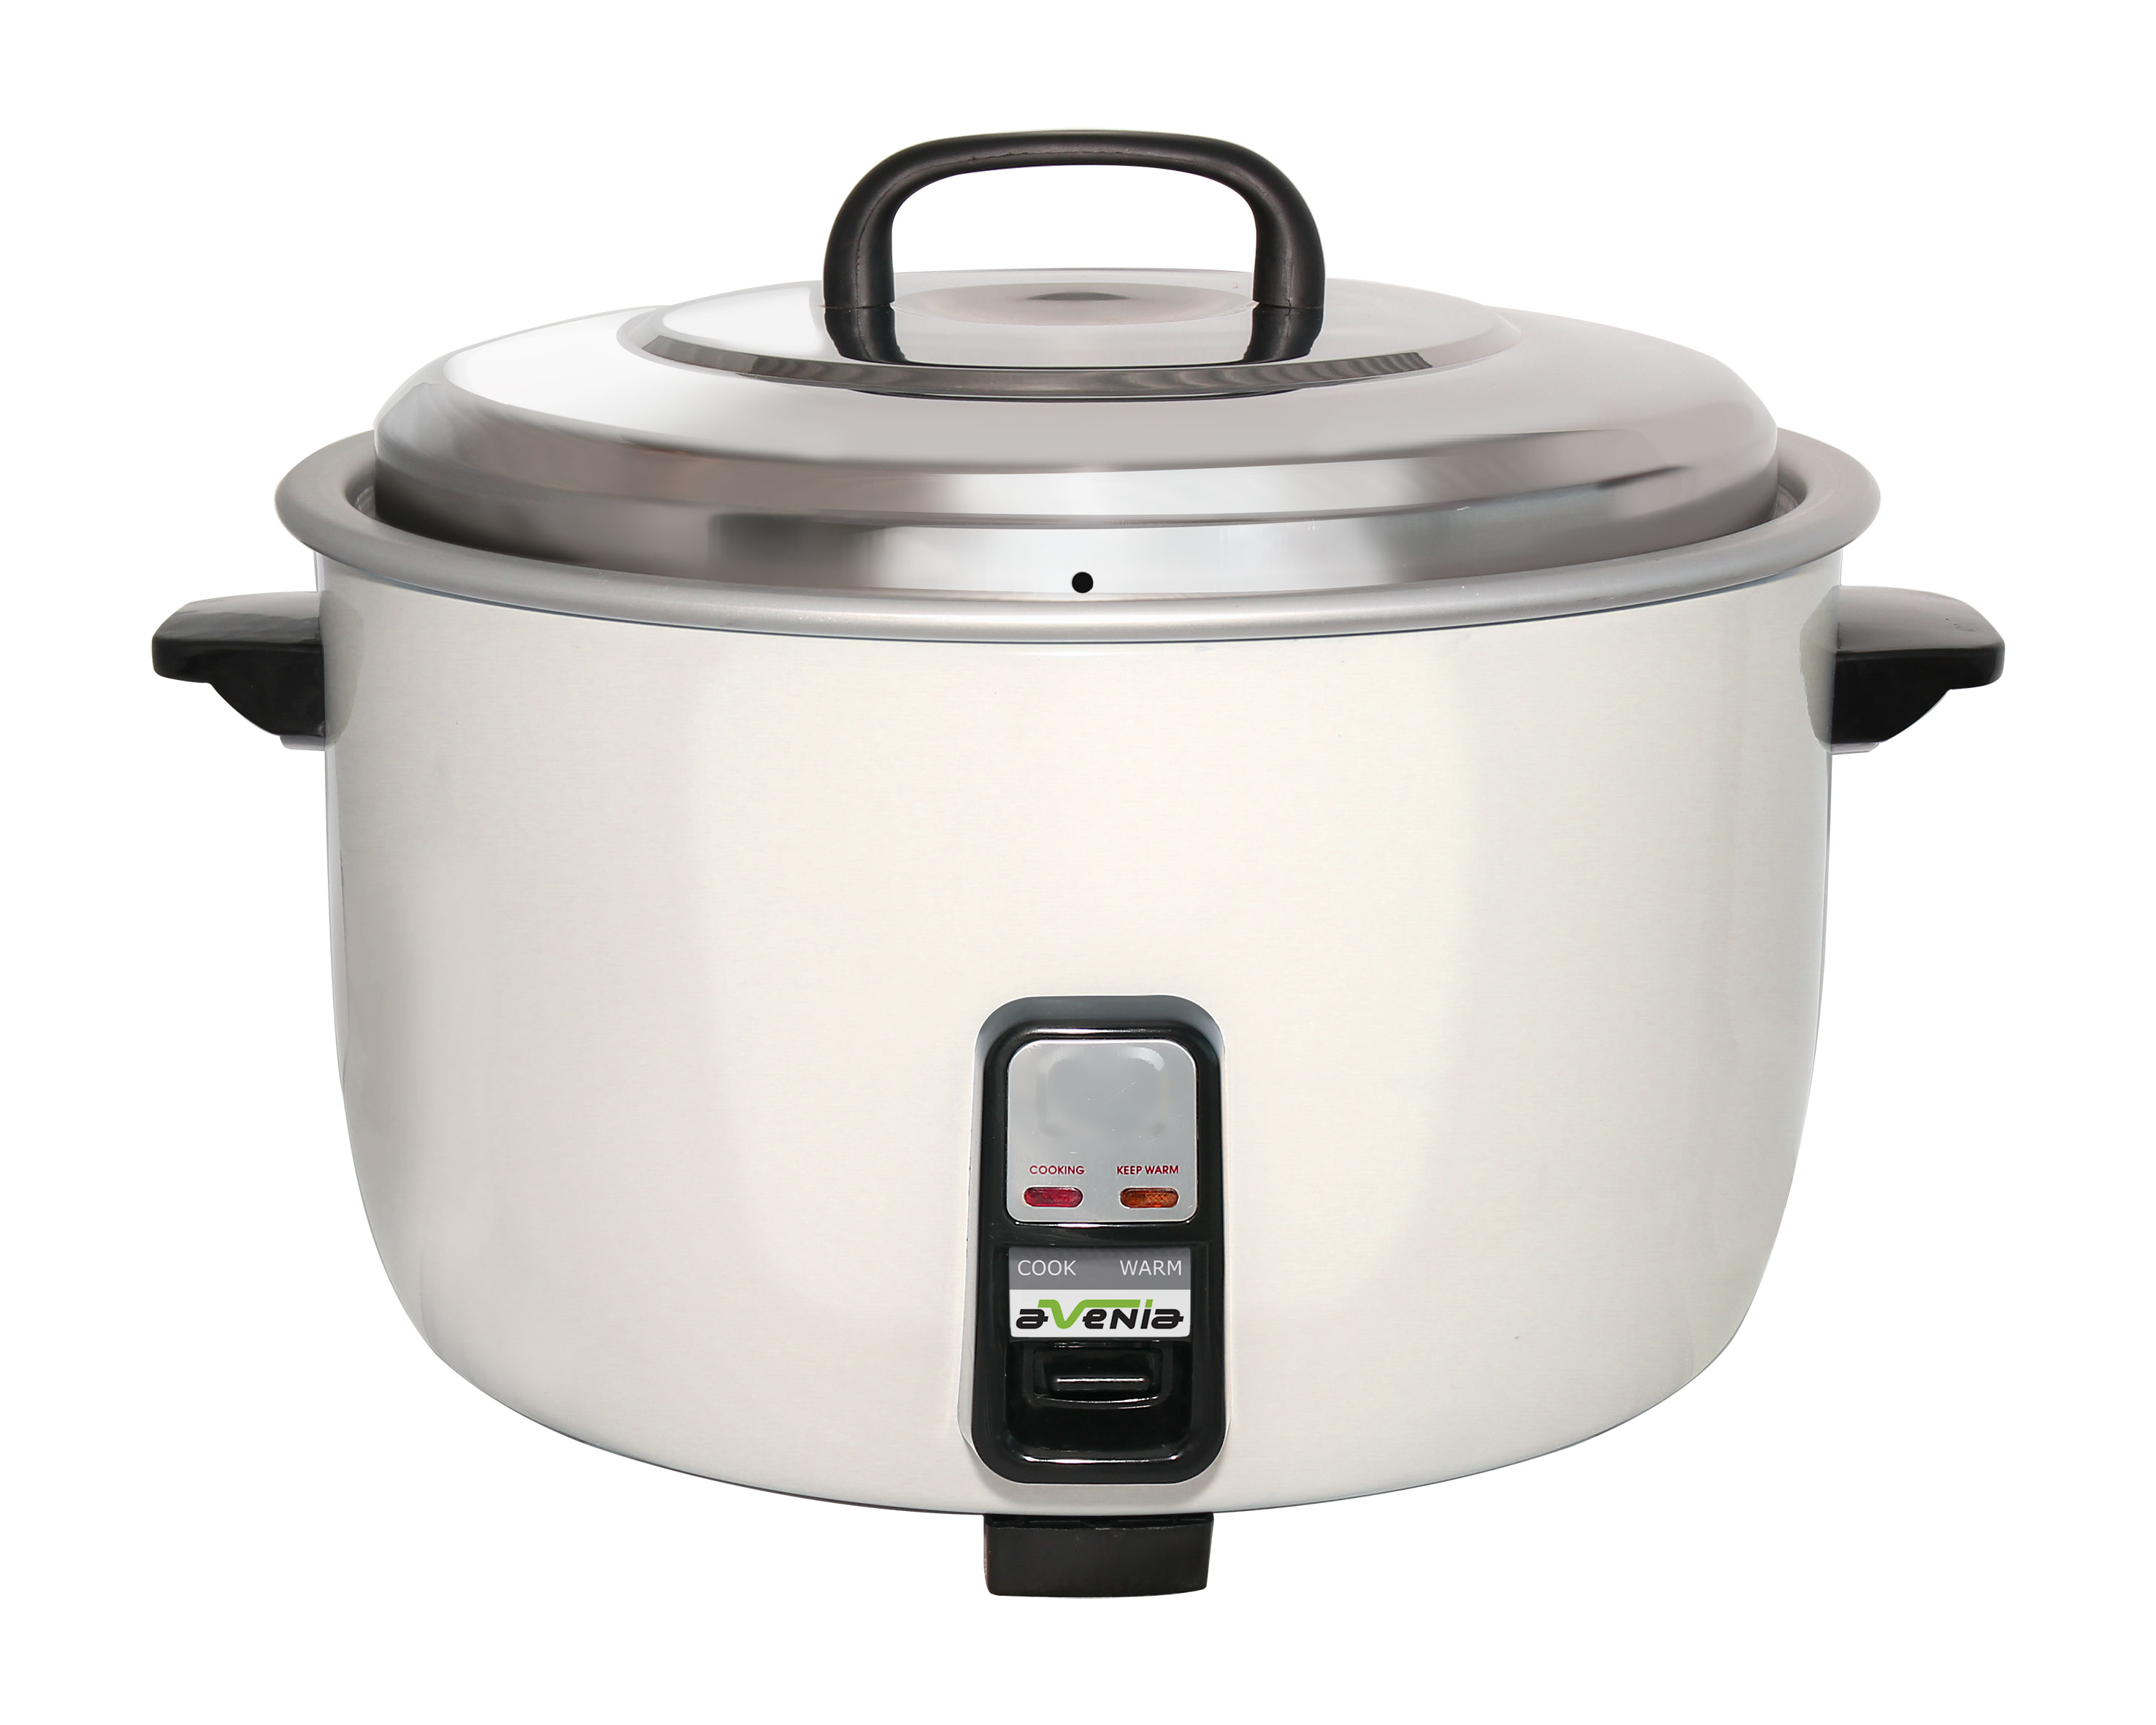 RICE COOKER AVENIA 8.5Lt